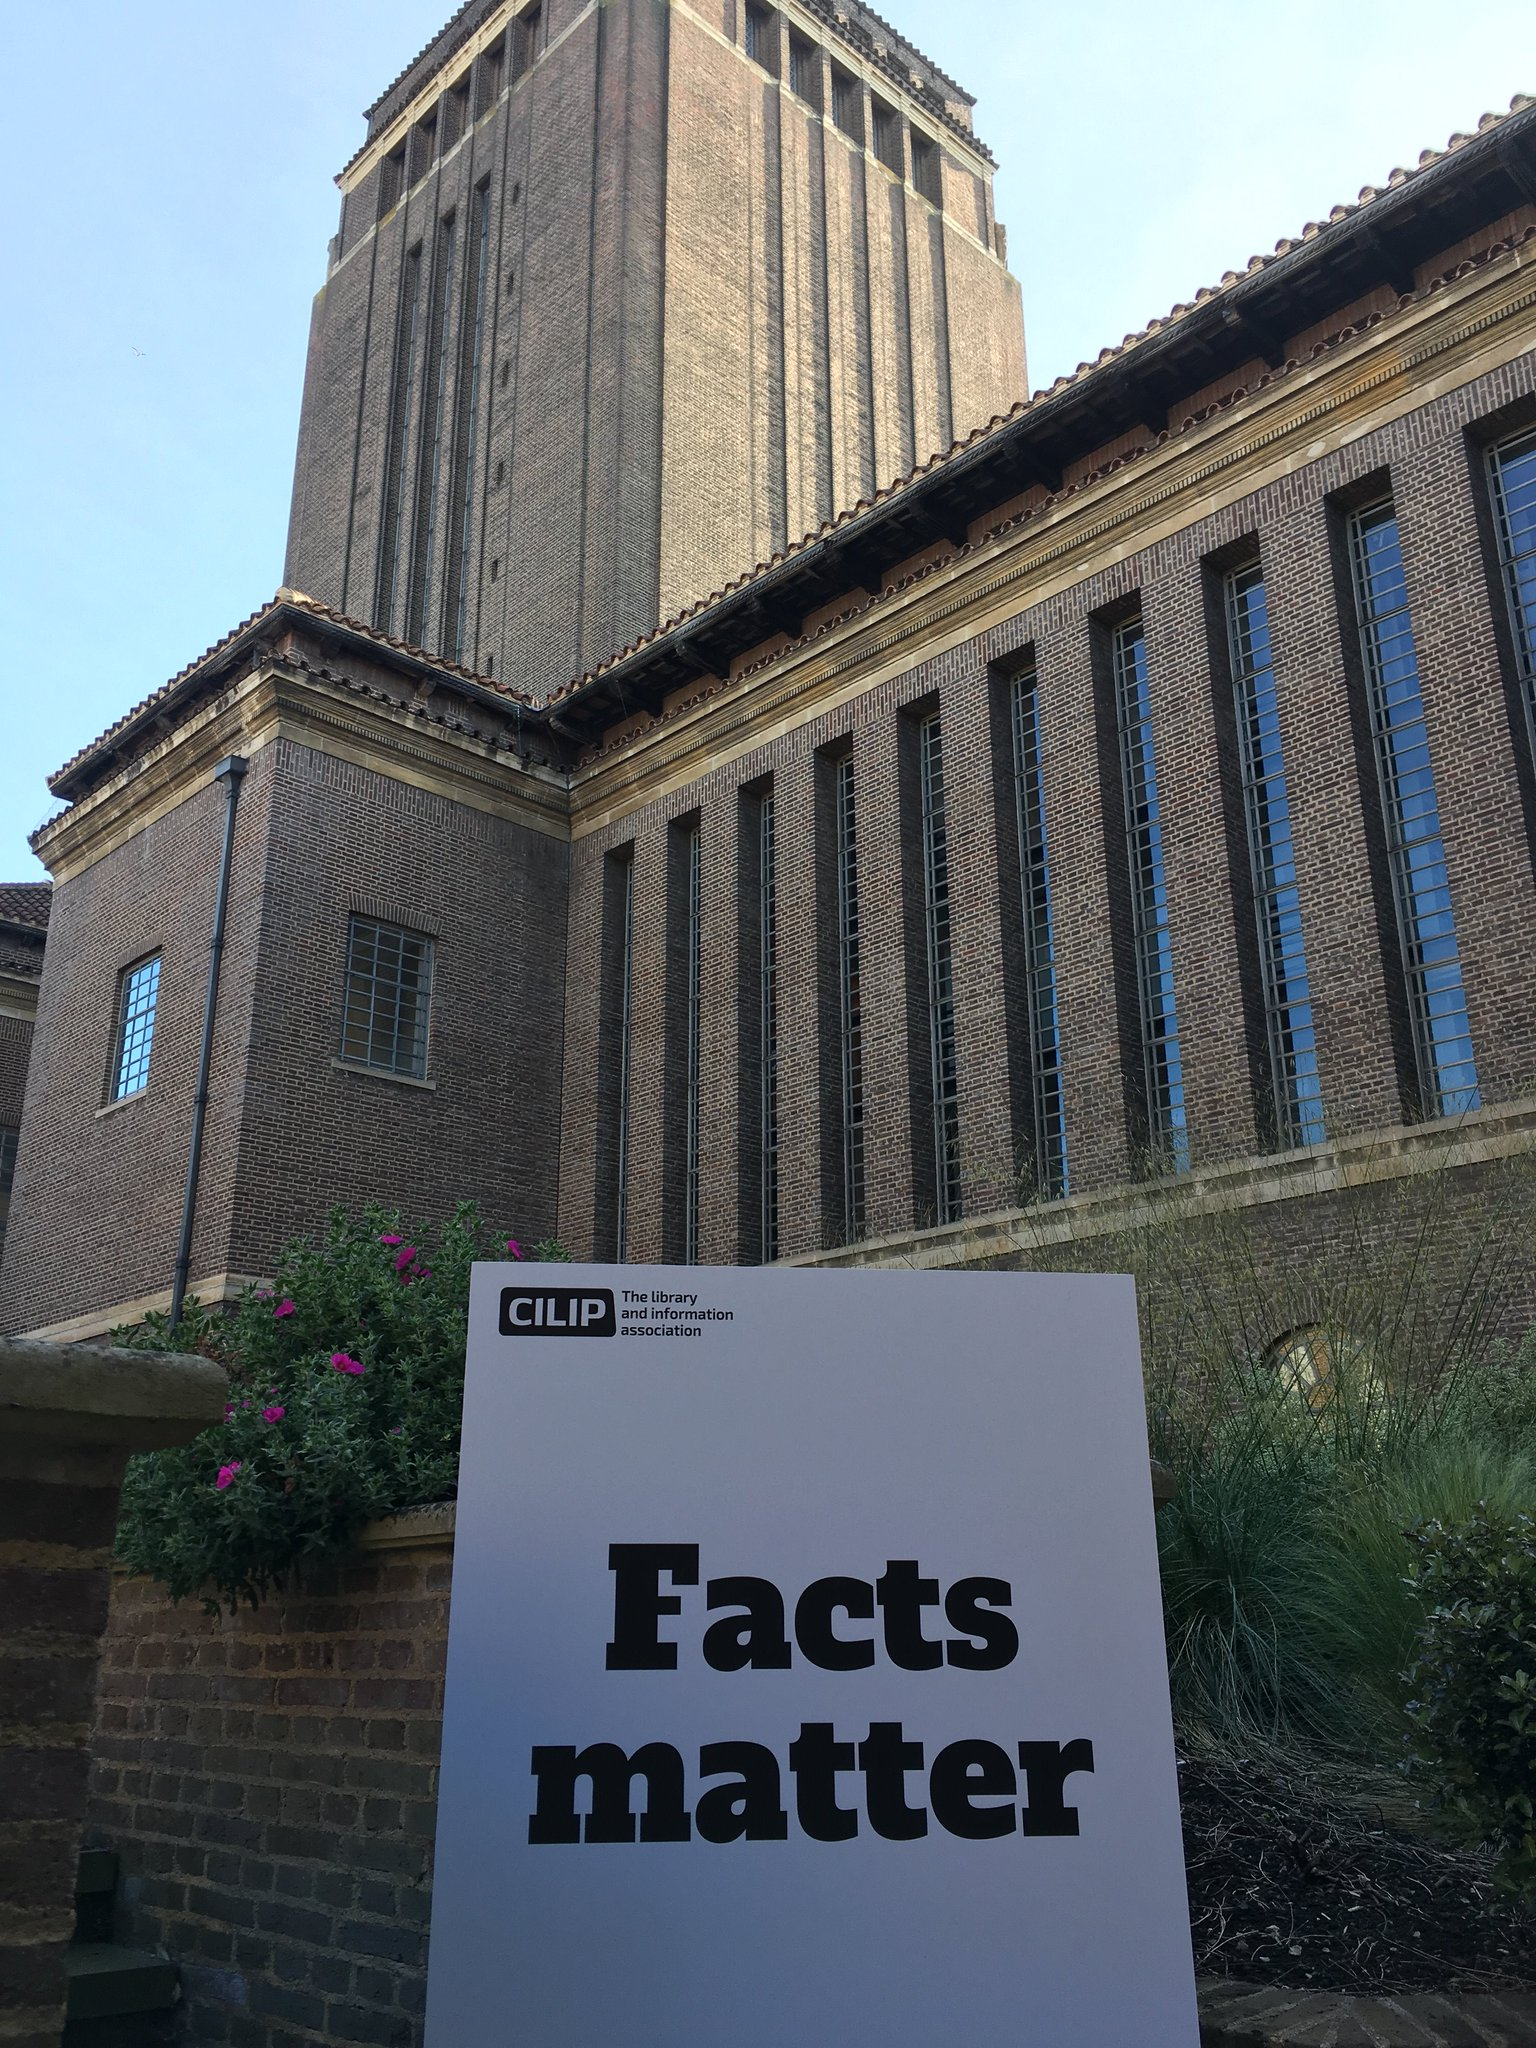 Getting ready to talk about why #FactsMatter tonight @theUL in Cambridge https://t.co/9Gb5iDoiWE https://t.co/m4CEJBw8zA